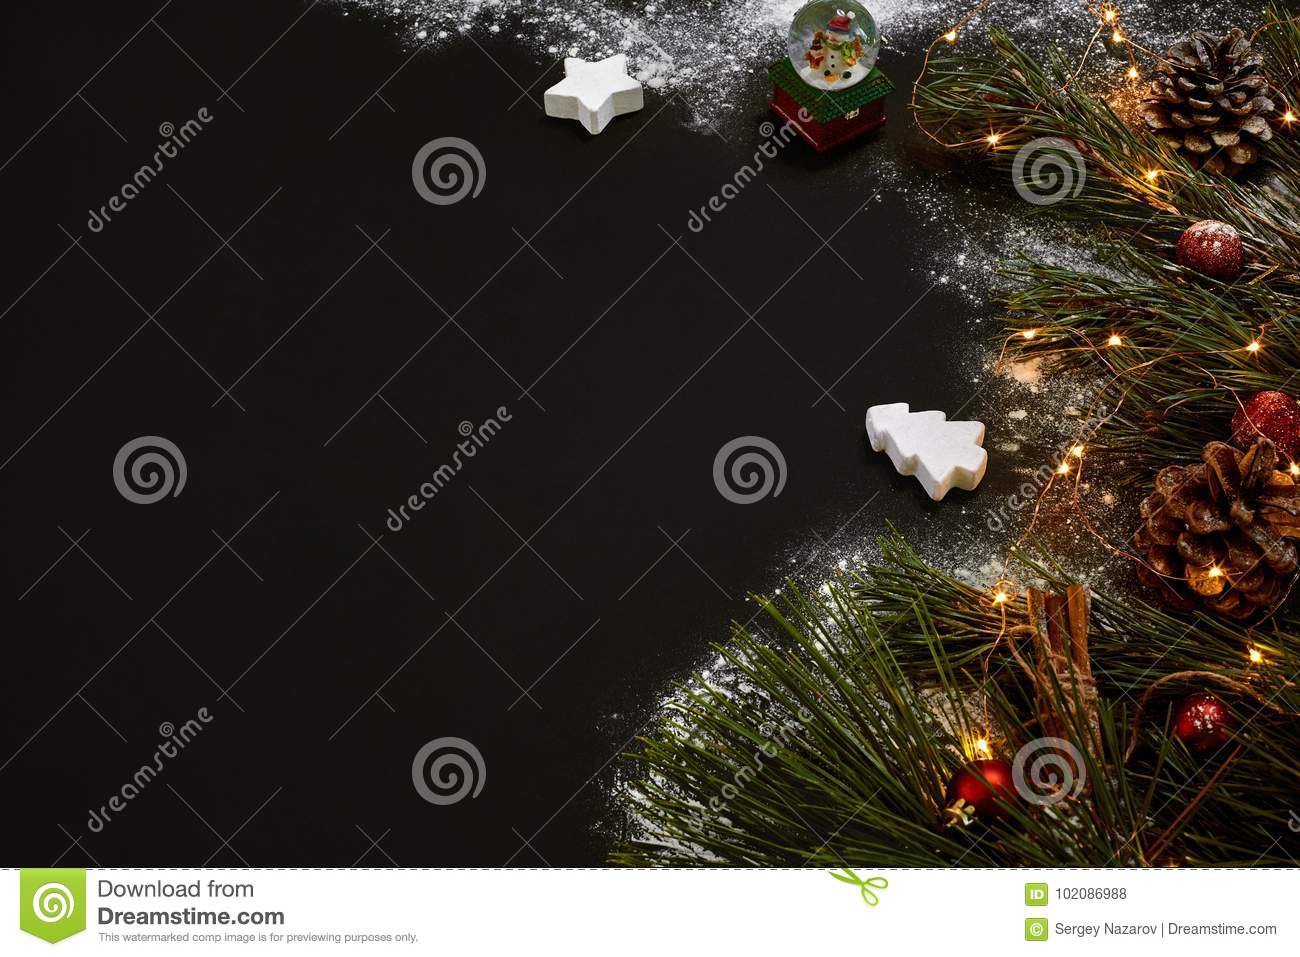 christmas christmas tree colored decor stars balls on black background top view copy space still life flat lay new year